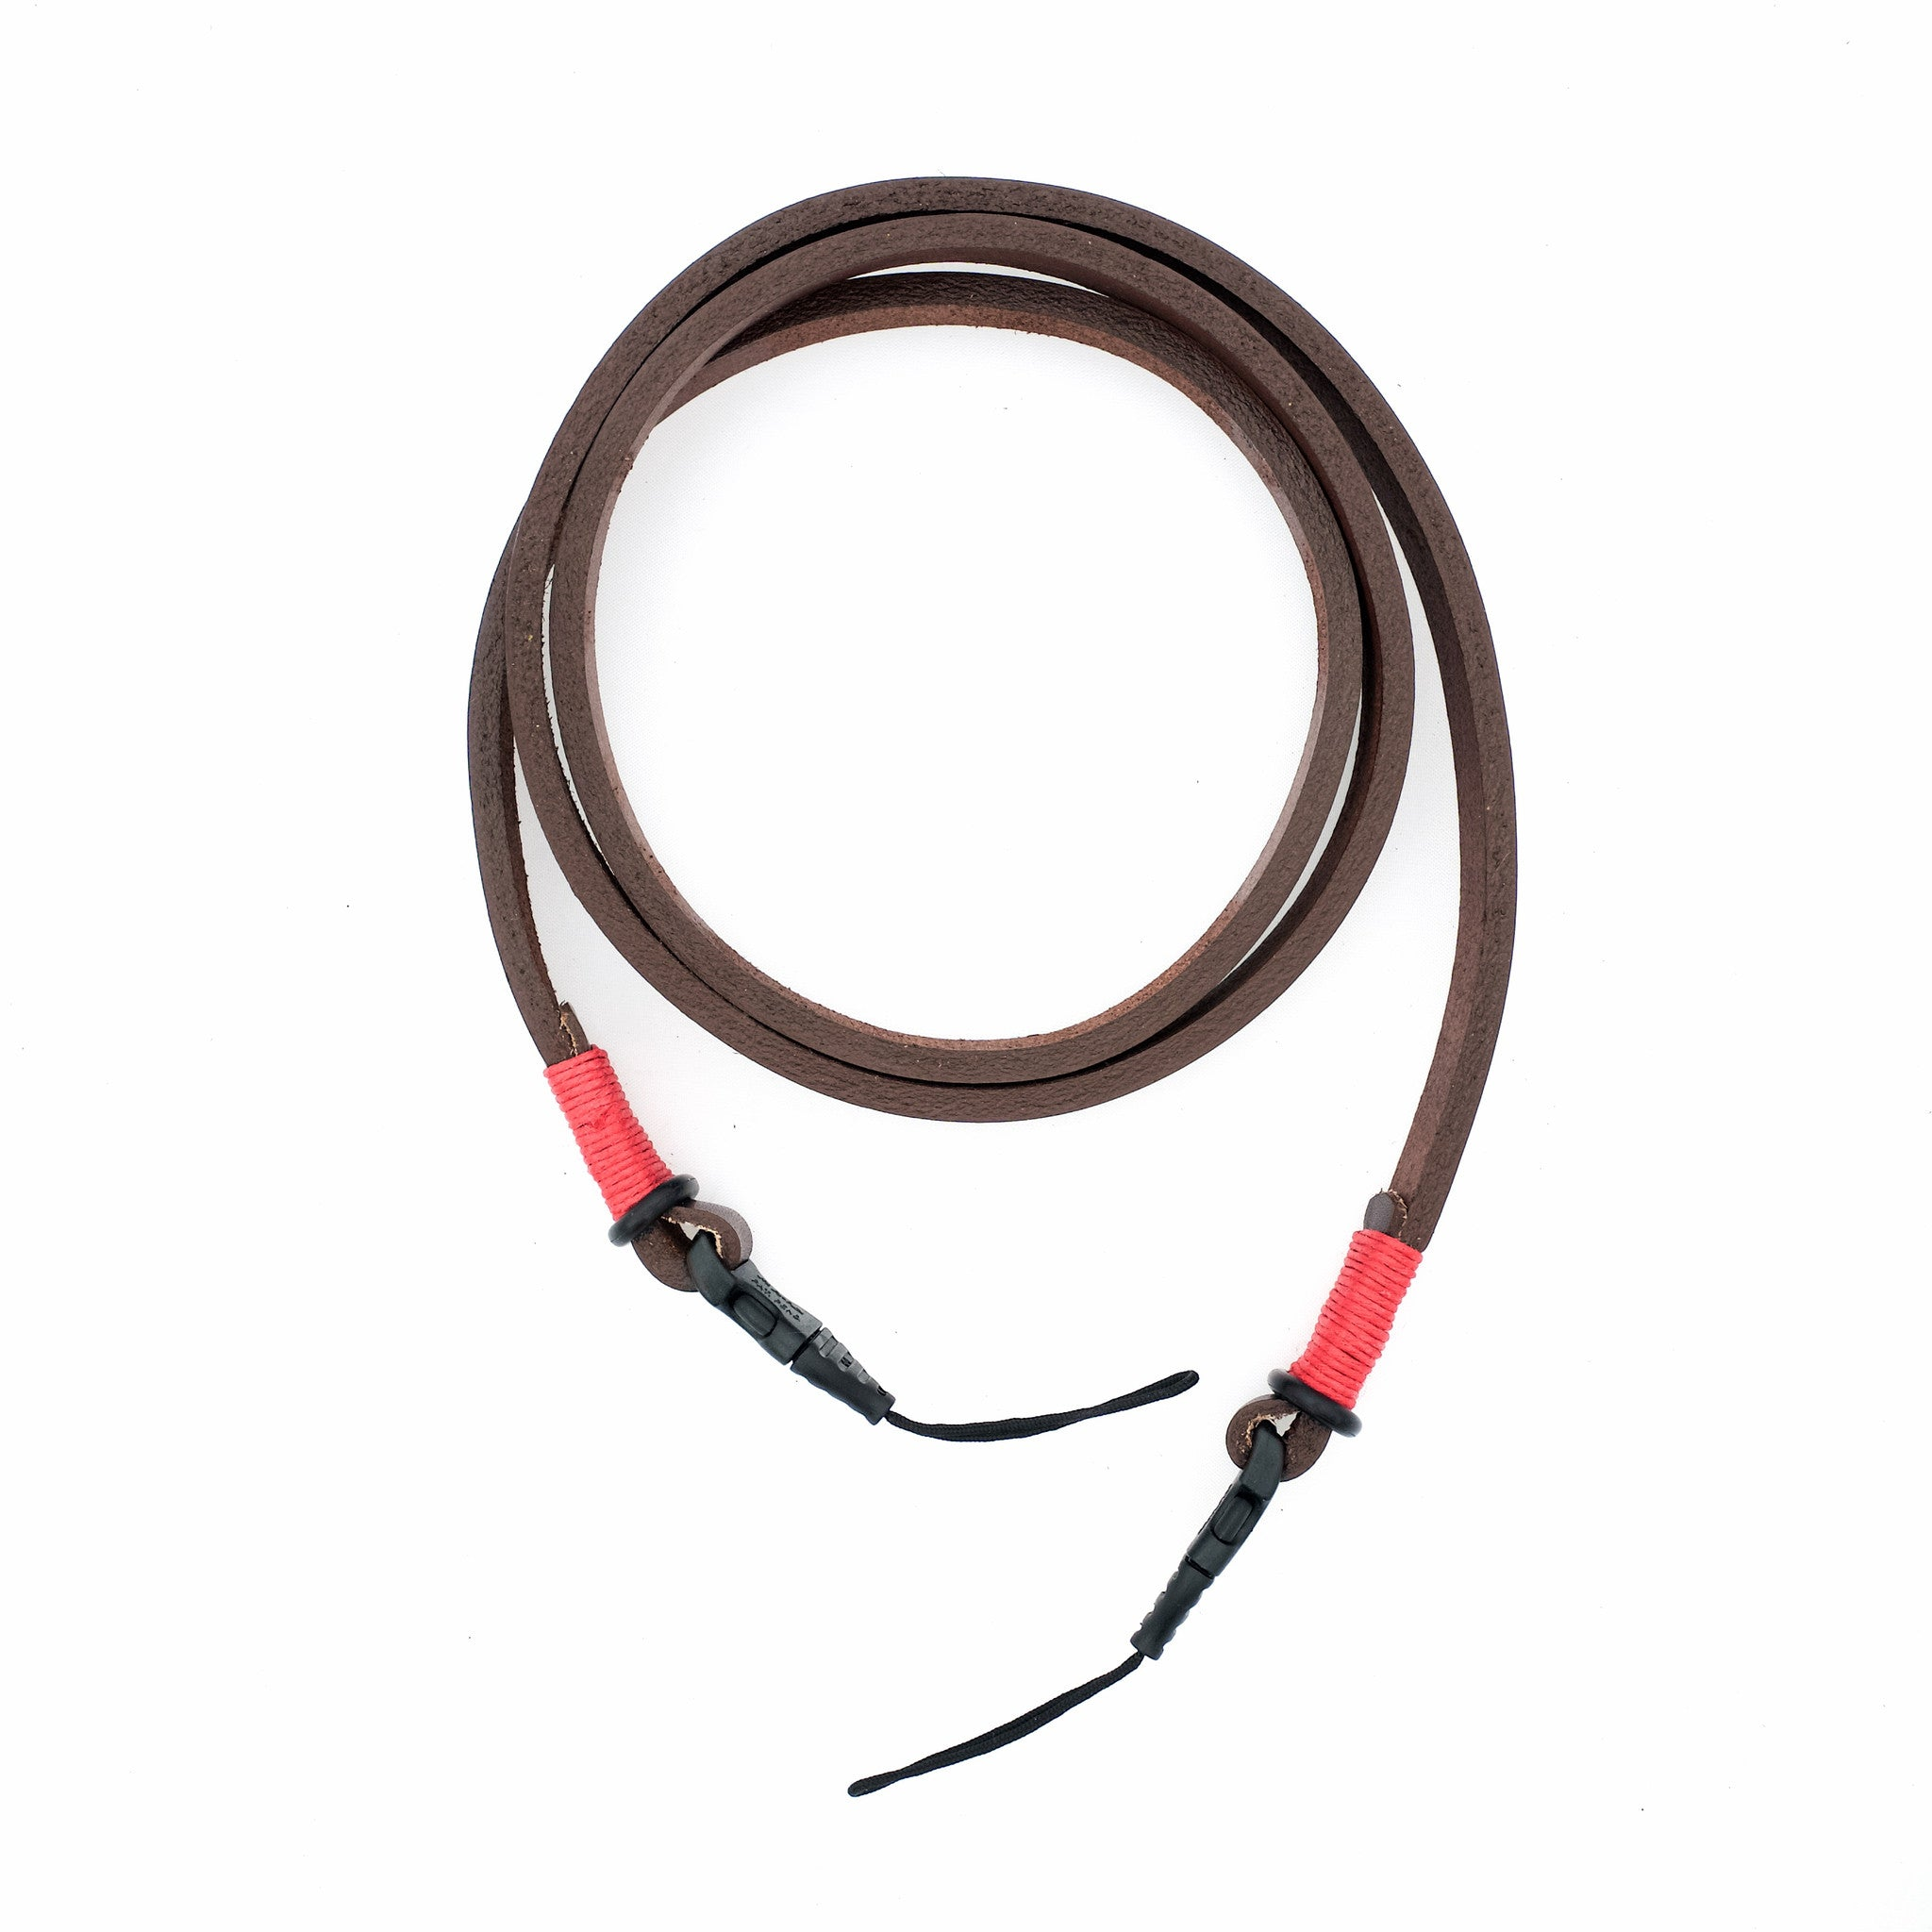 Camera Neck Strap With Quick Release—Brown/Red